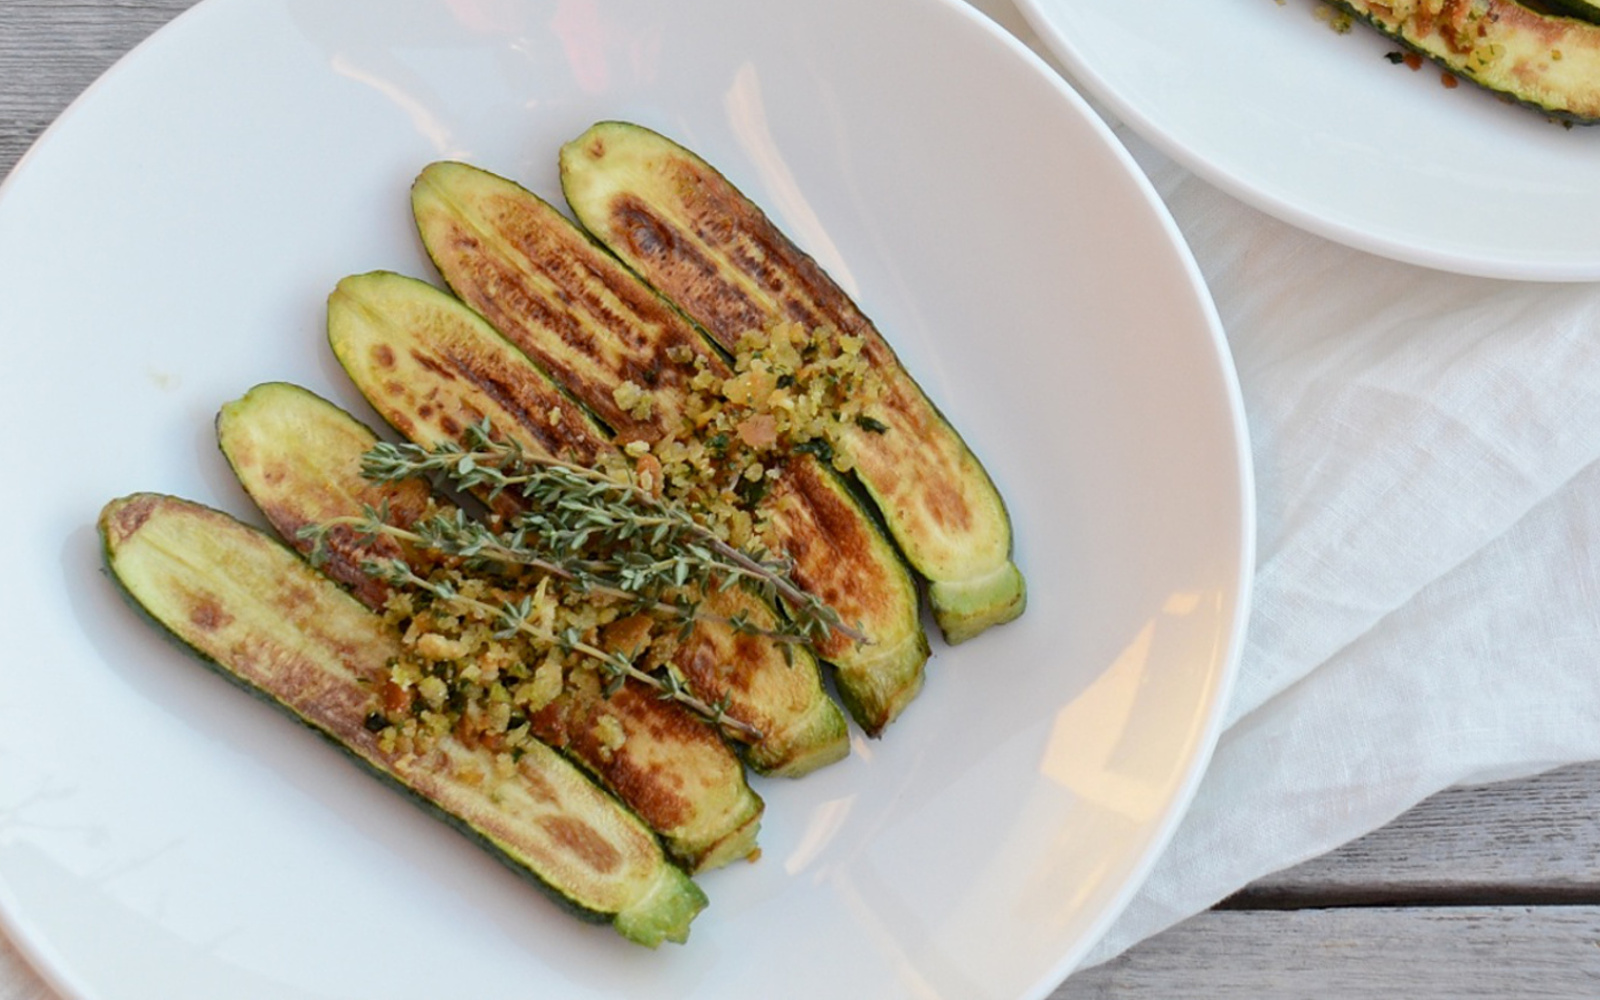 Grilled Zucchini With Herbed Crumbs